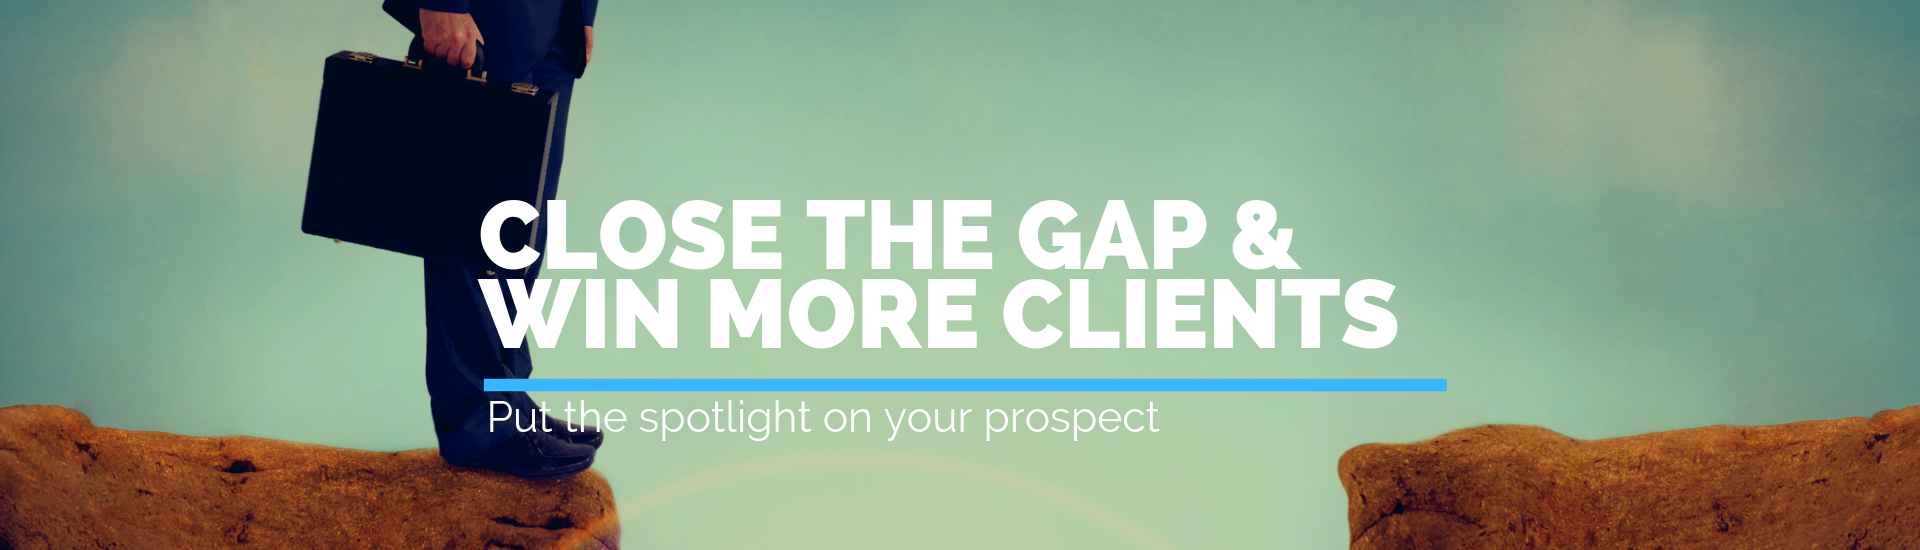 Close the Gap & Win More Clients   Andrew Abel   Advisio